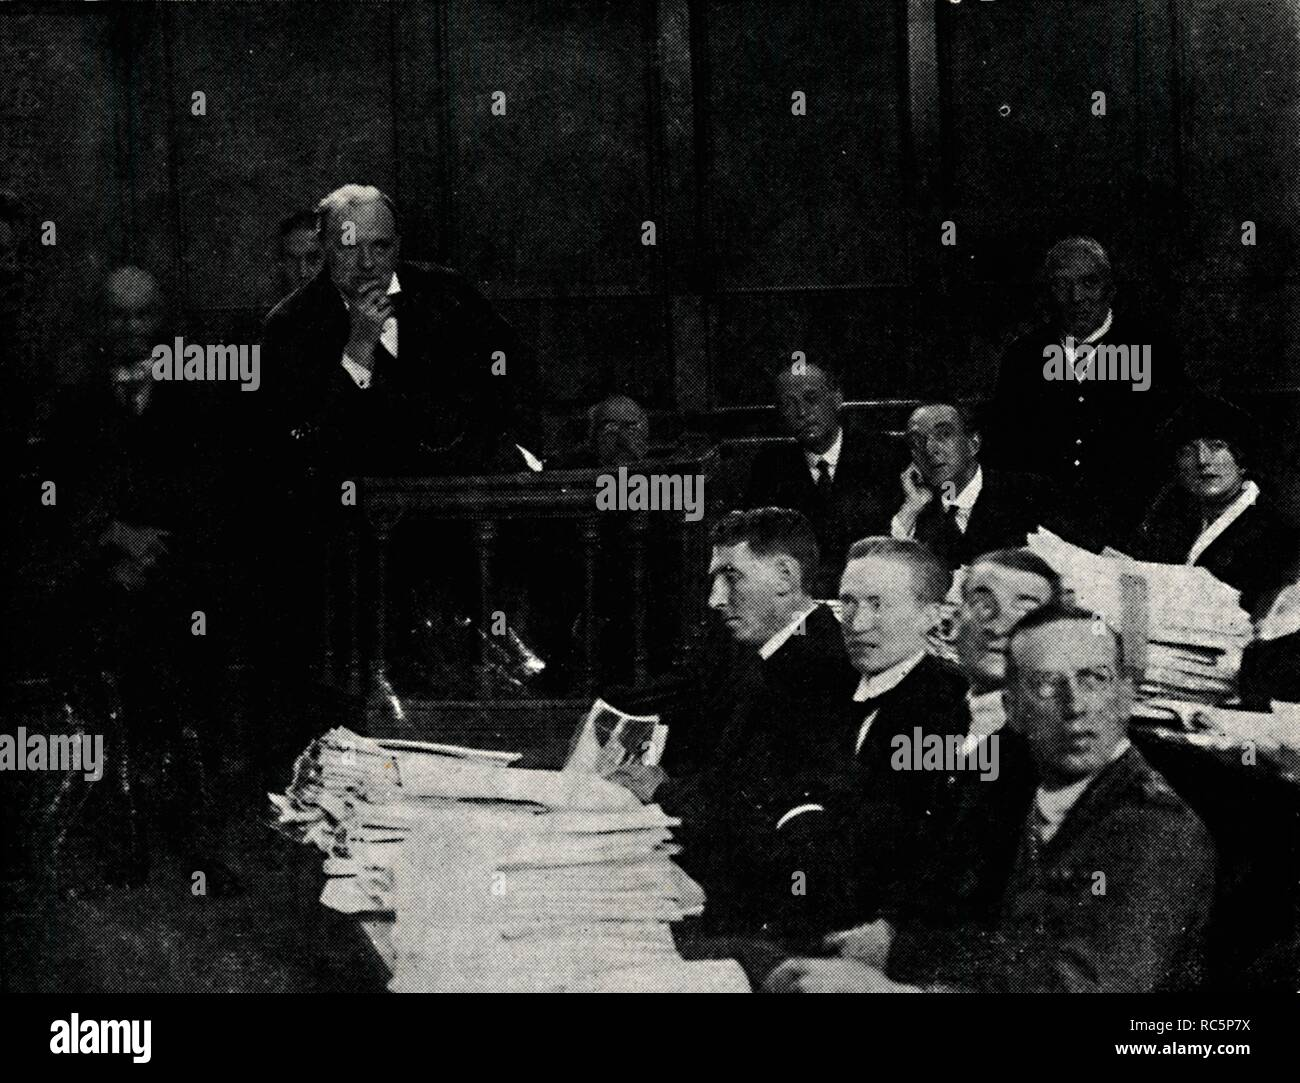 """'Tank Inquiry at Lincoln's Inn', c1919, (1945). British politician and statesman Sir Winston Churchill (1874-1965) at an inquiry in London. Churchill had encouraged the development of the tank, which he believed would be useful in overcoming the problems of trench warfare during the First World War, and financed its creation with admiralty funds. Churchill was Prime Minister of the United Kingdom from 1940 to 1945, and again from 1951 to 1955. From """"The Life and Times of Winston Churchill"""", by Malcolm Thomson. [Odhams Press Limited, London] - Stock Image"""